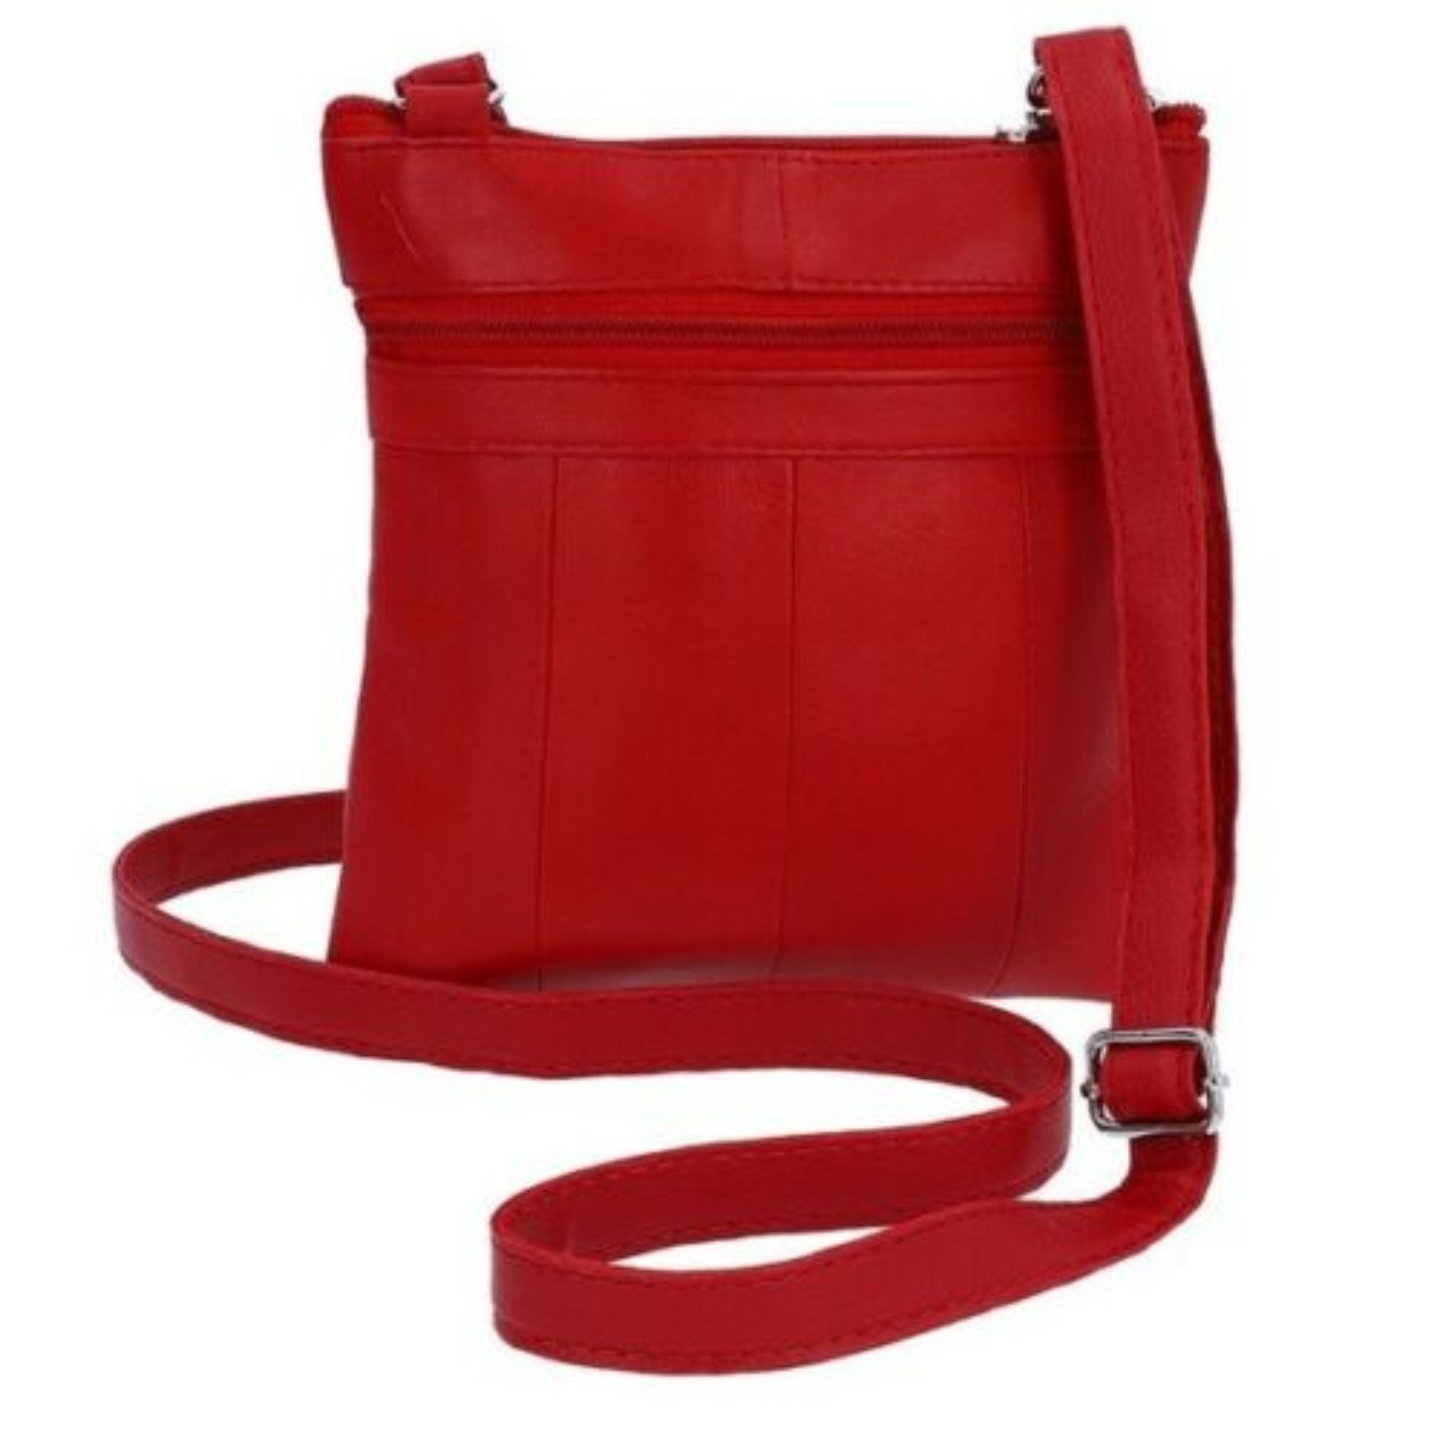 Mini Sling & Crossbody Style Leather Bag - 1027 Red